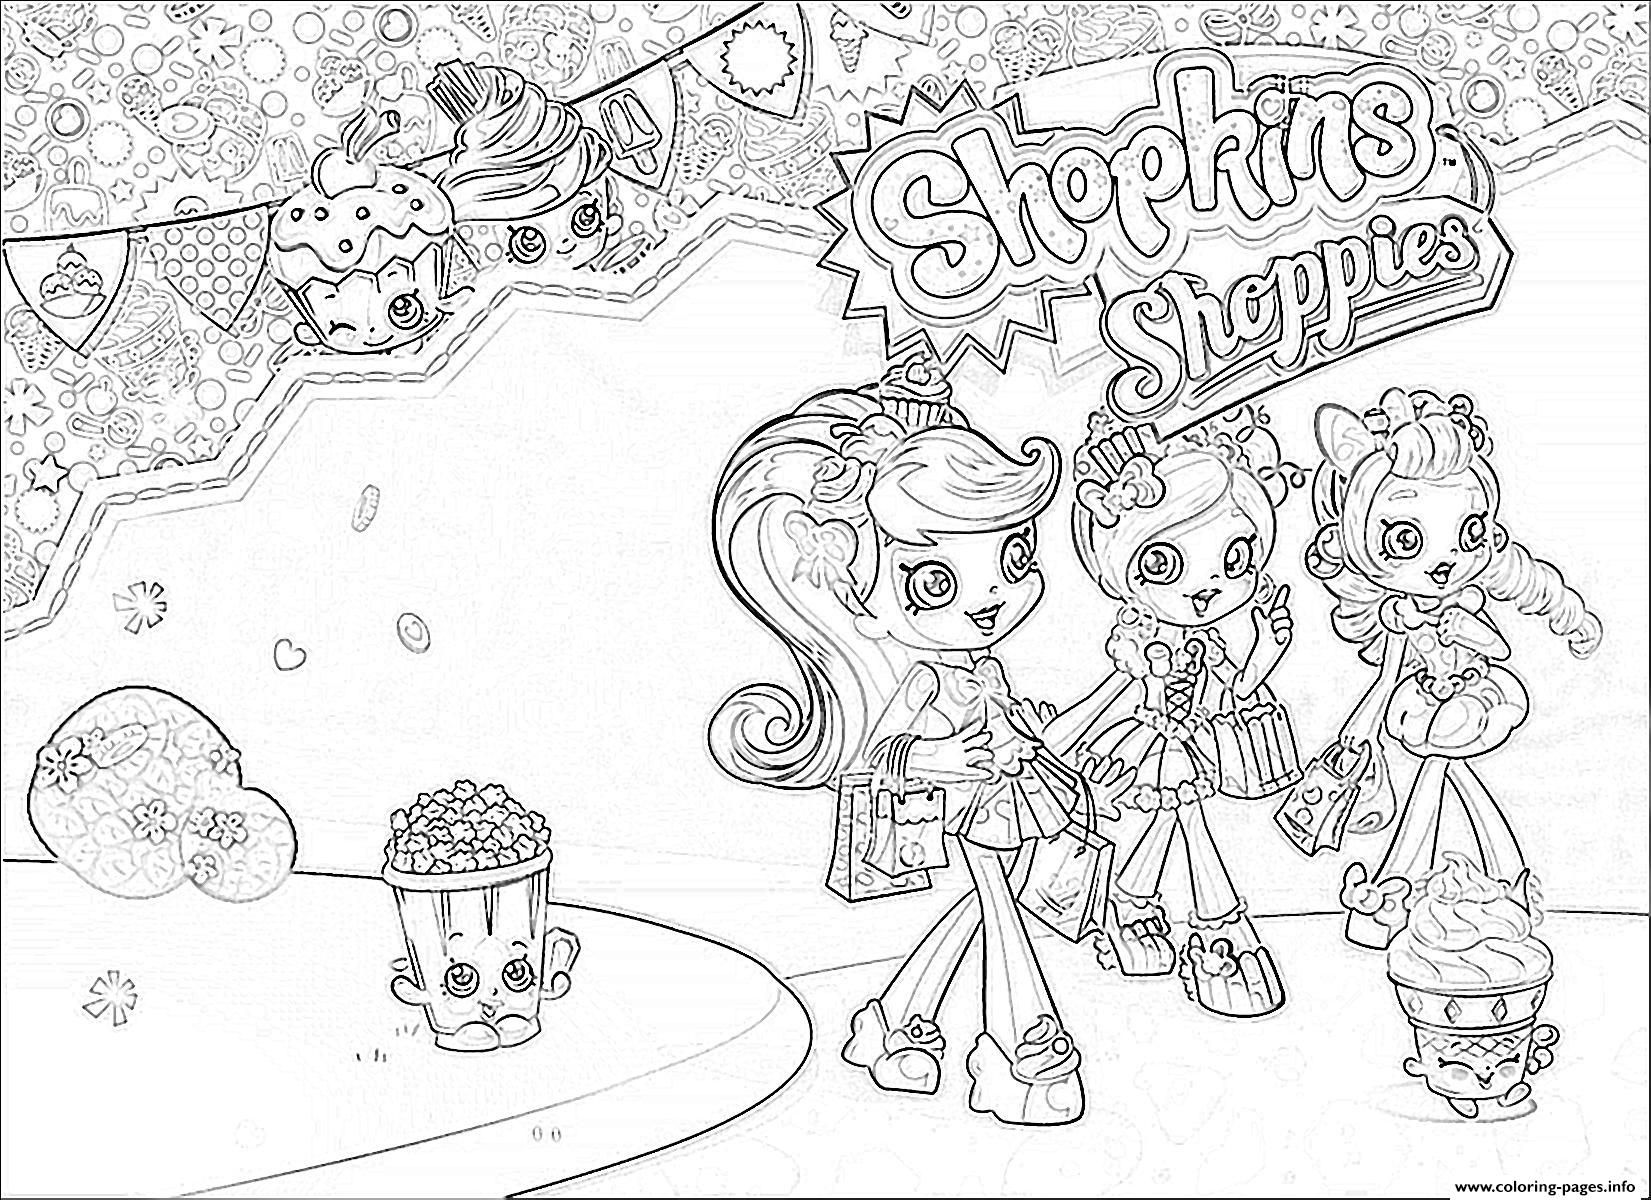 Print Shopkins Shoppies Girls Coloring Pages Shopkins Colouring Pages Shopkins Coloring Pages Free Printable Shopkin Coloring Pages